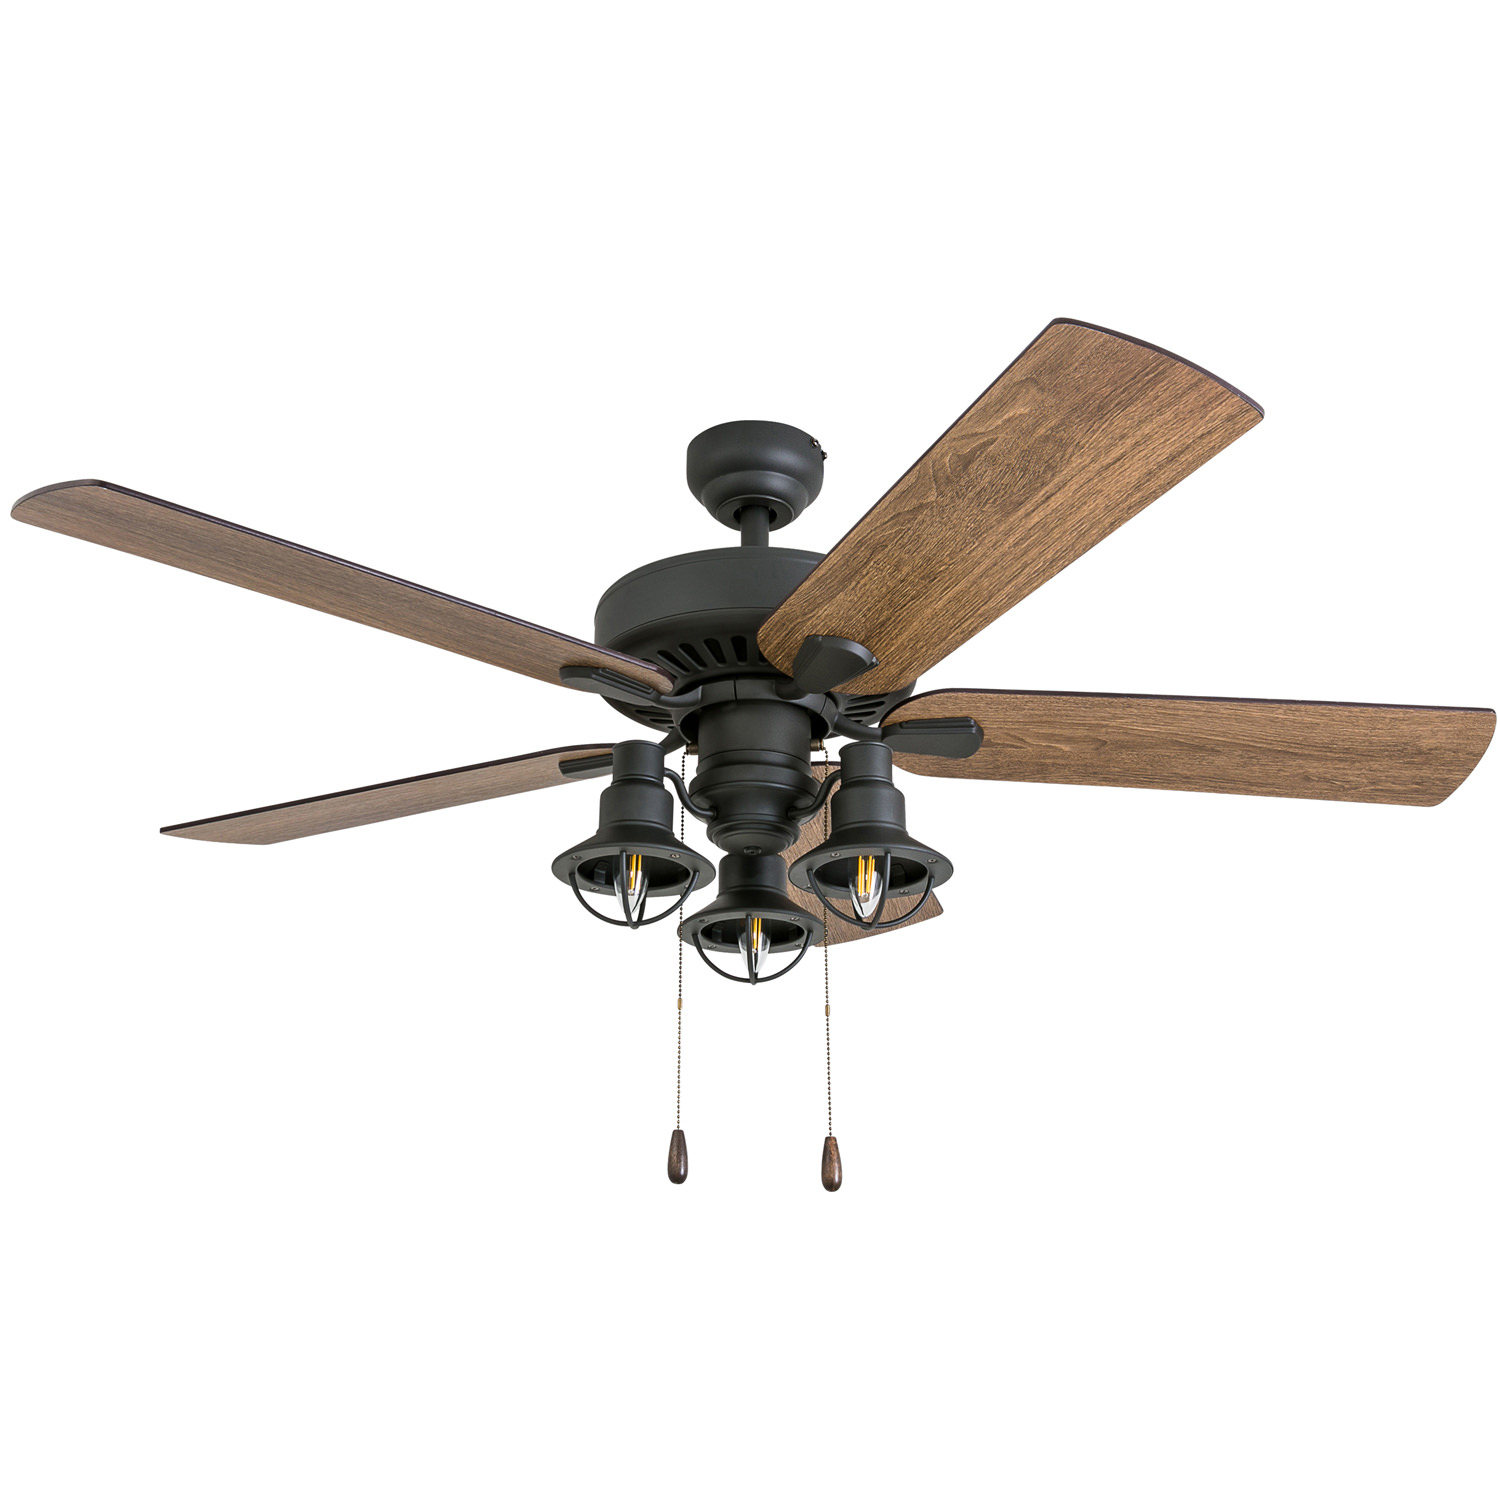 Prominence Home 50756-35 Ennora Farmhouse 52-Inch Aged Bronze Indoor Ceiling Fan, Lantern LED Multi-Arm Barnwood/Tumbleweed Blades and 3 speed remote